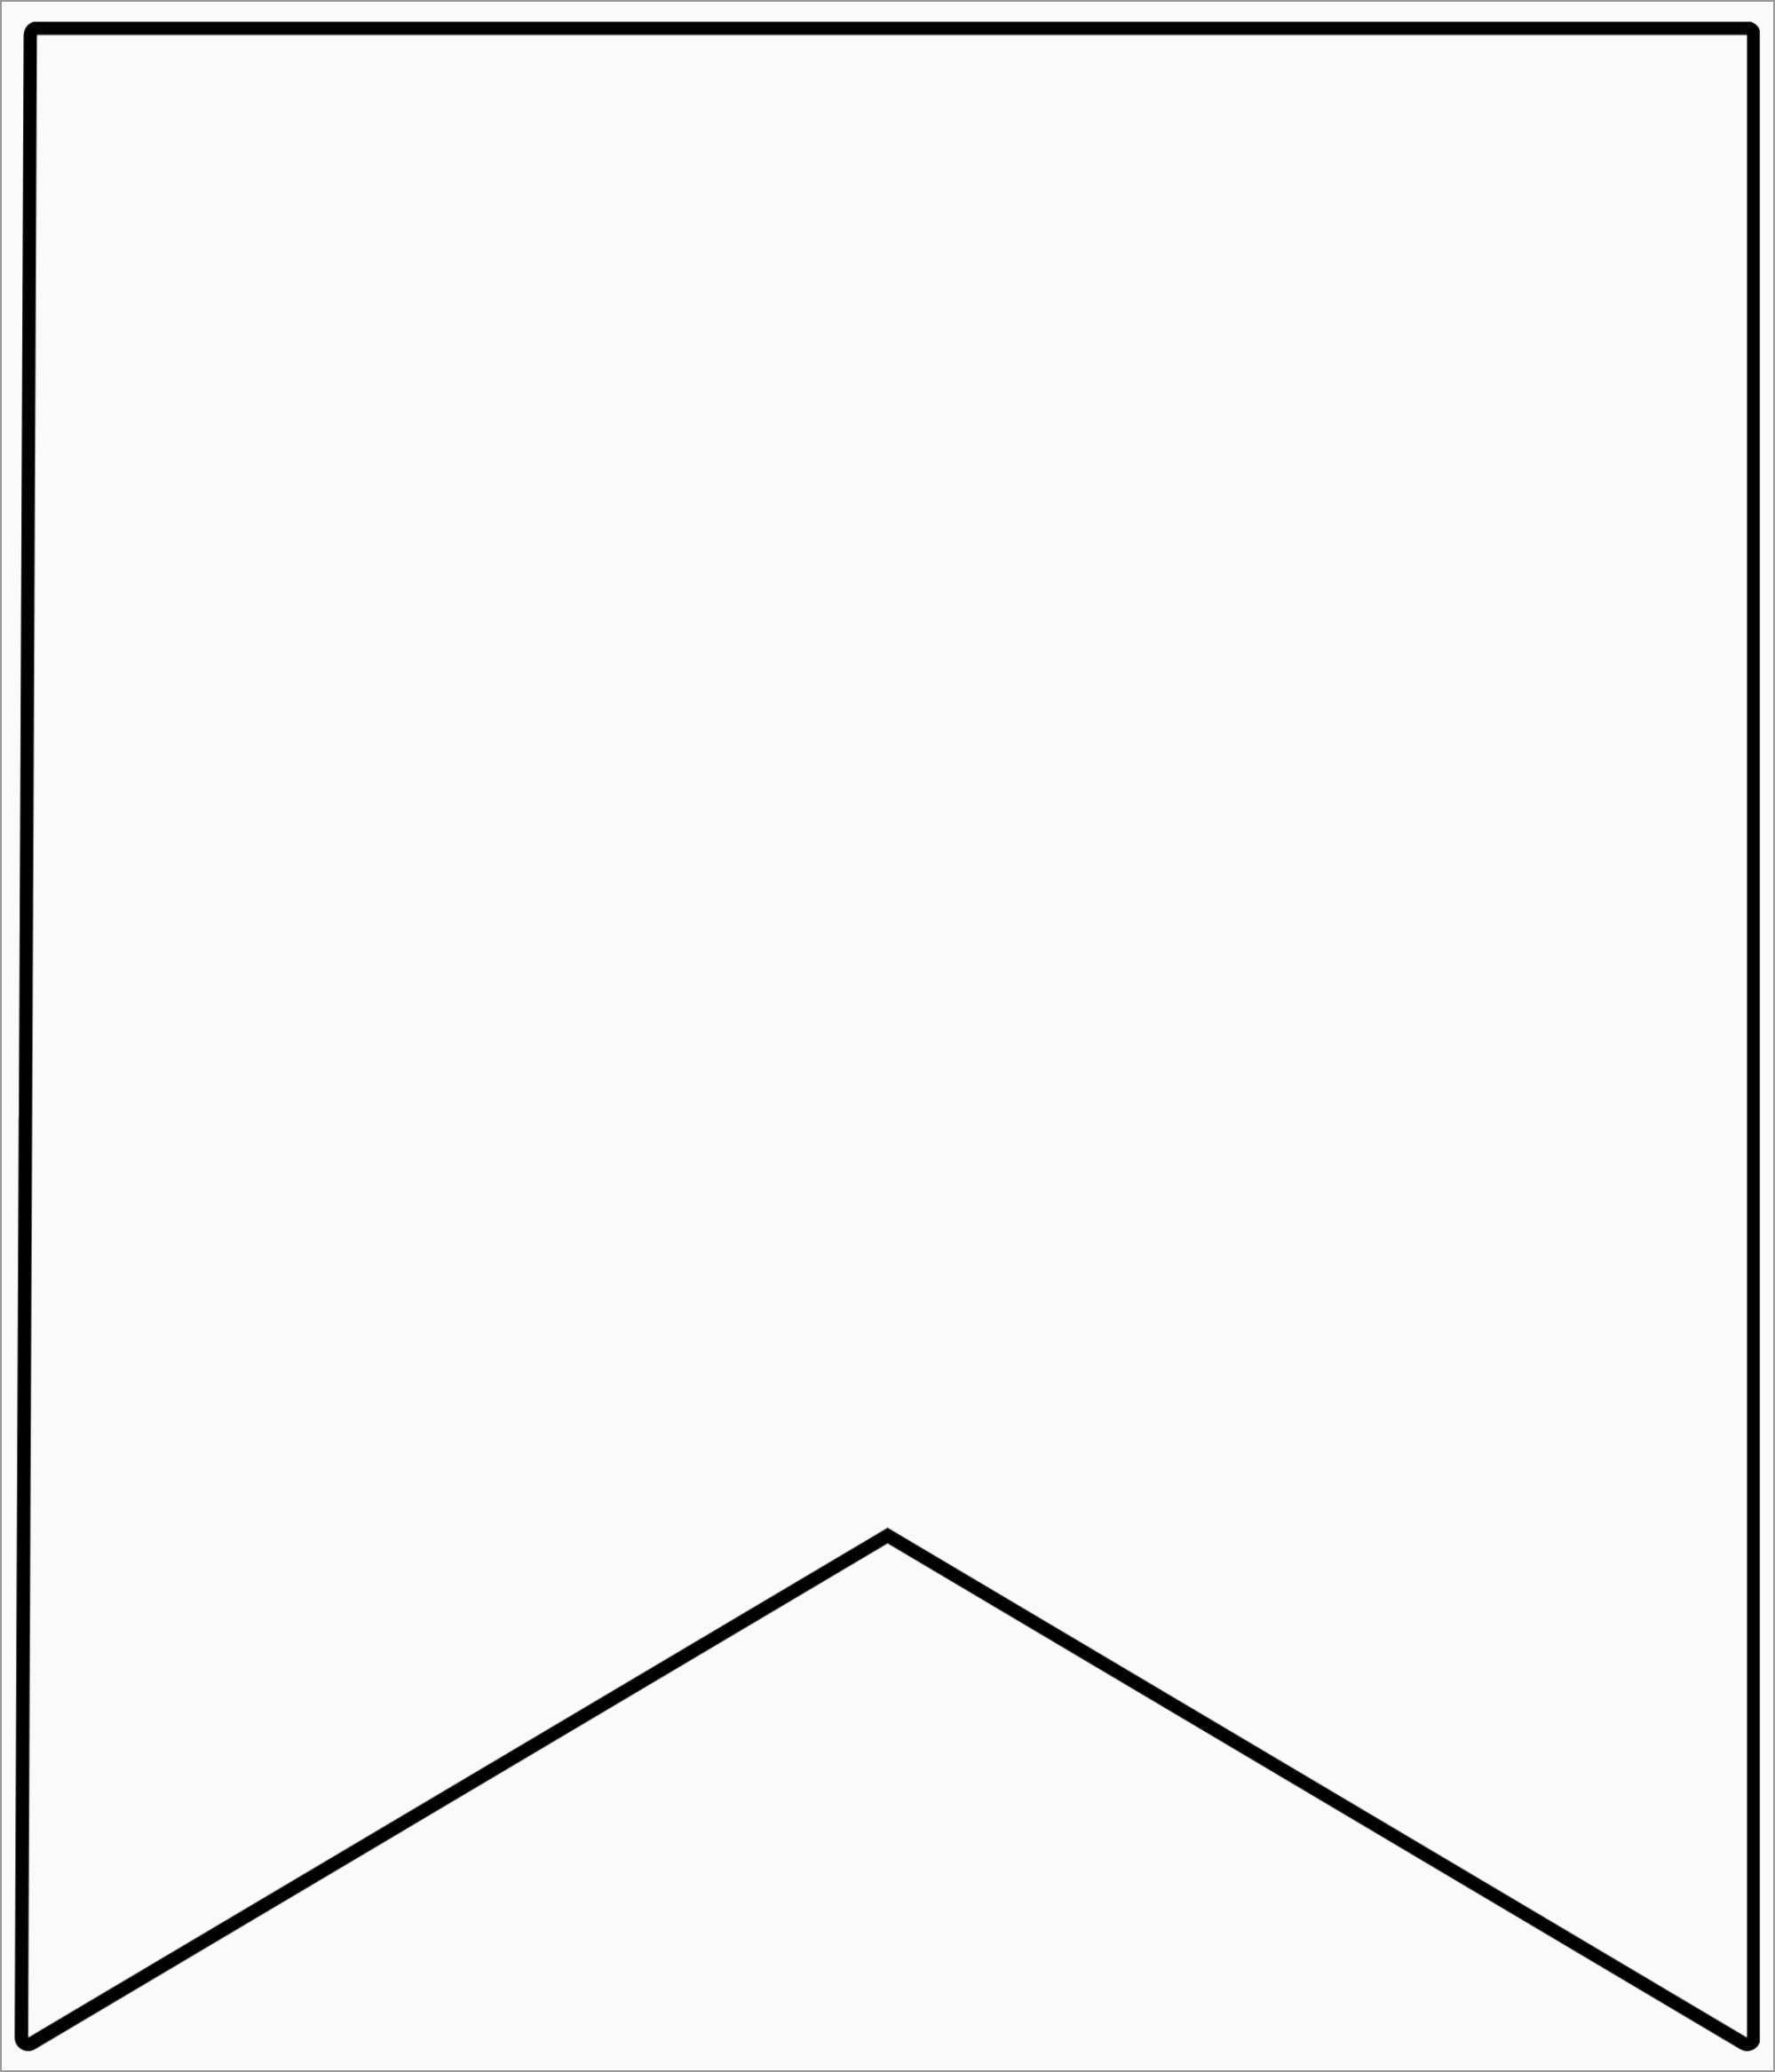 Free Printable Triangle Banner Template Wonderfully Best Images With Triangle Banner Template Free